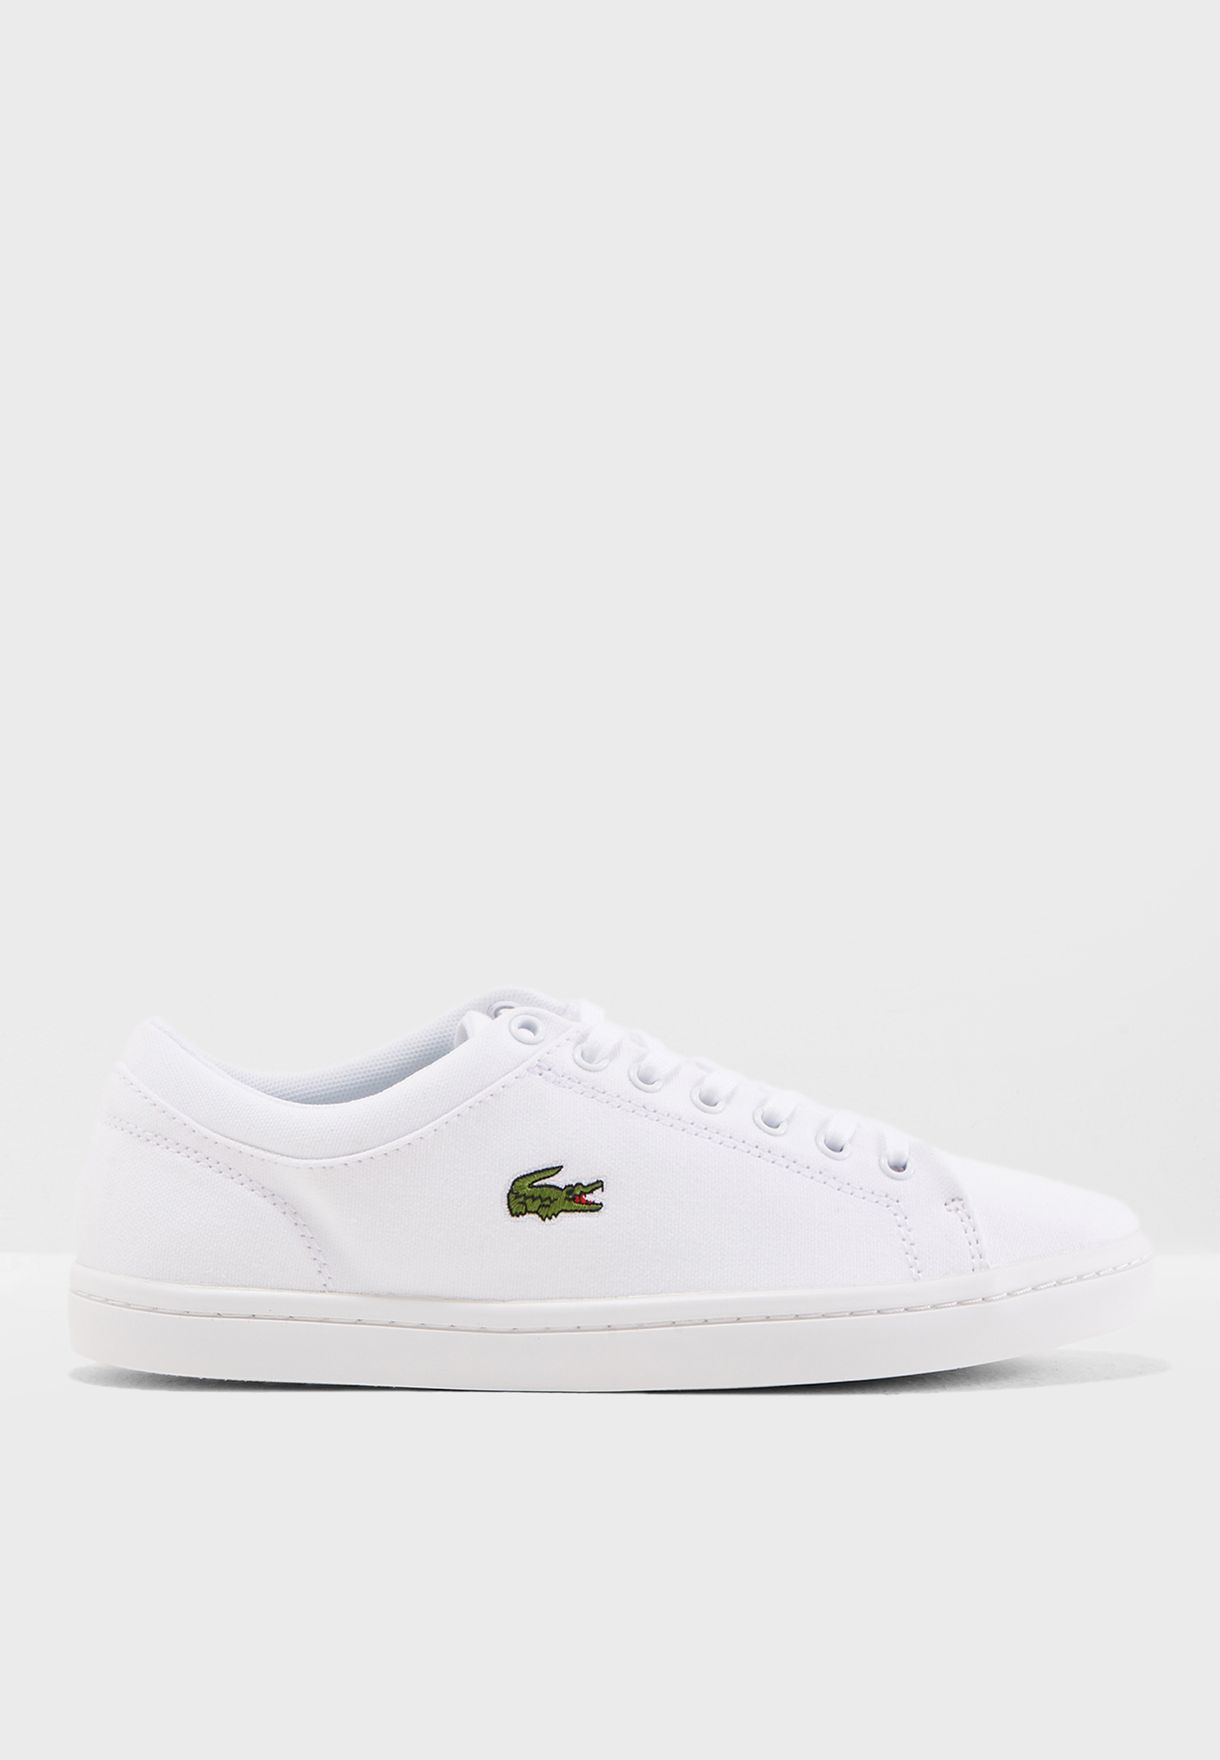 338fdcf7fad0 Shop Lacoste white Straightset Bl 2 Spw Sneaker 732SPW0134 for Women ...